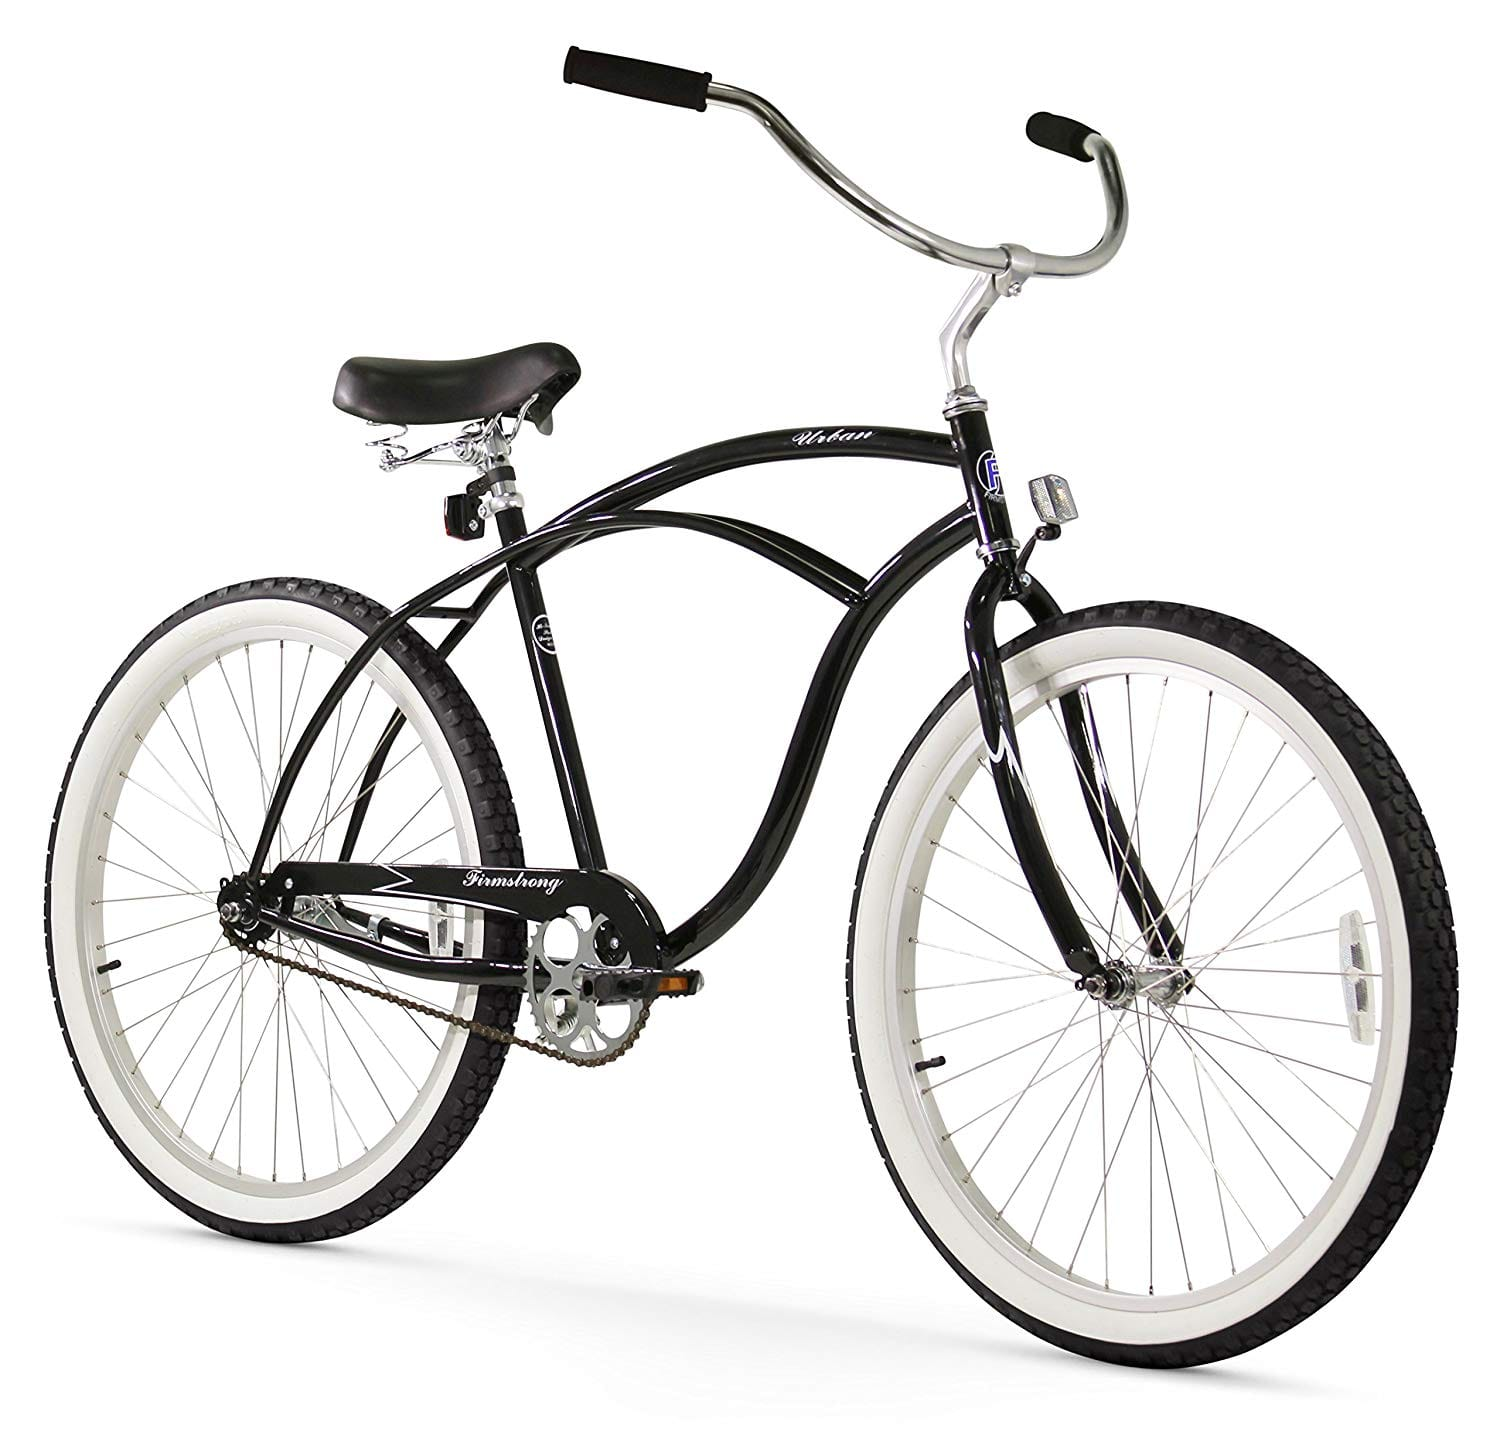 Firmstrong Urban Man Single Speed Beach Cruiser Bicycle, 26-Inch, Black only - Amazon $143.60